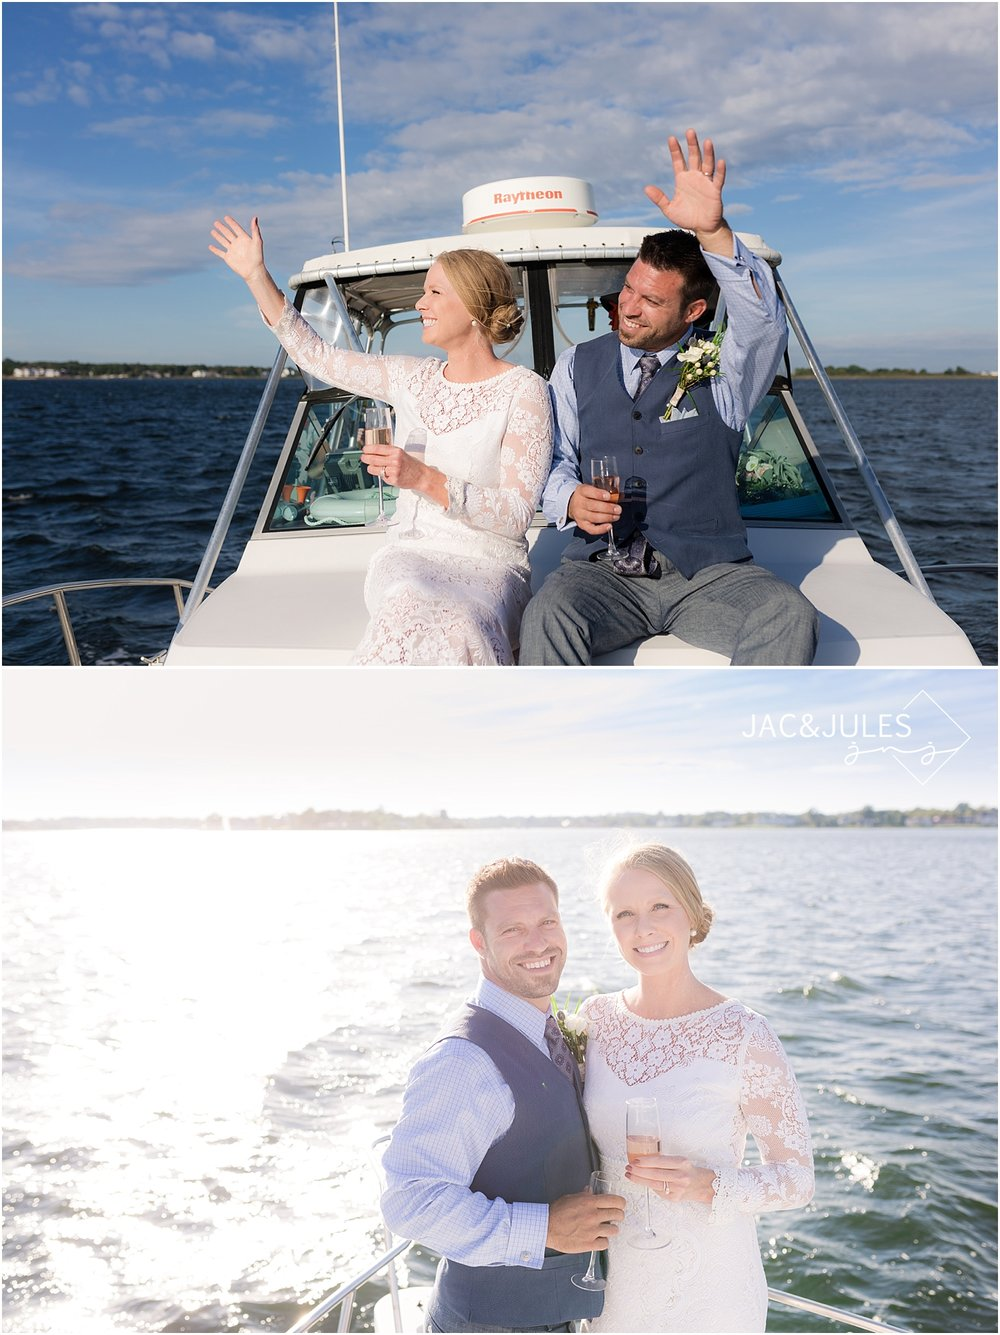 fun boat ride with newlyweds in shrewsbury nj